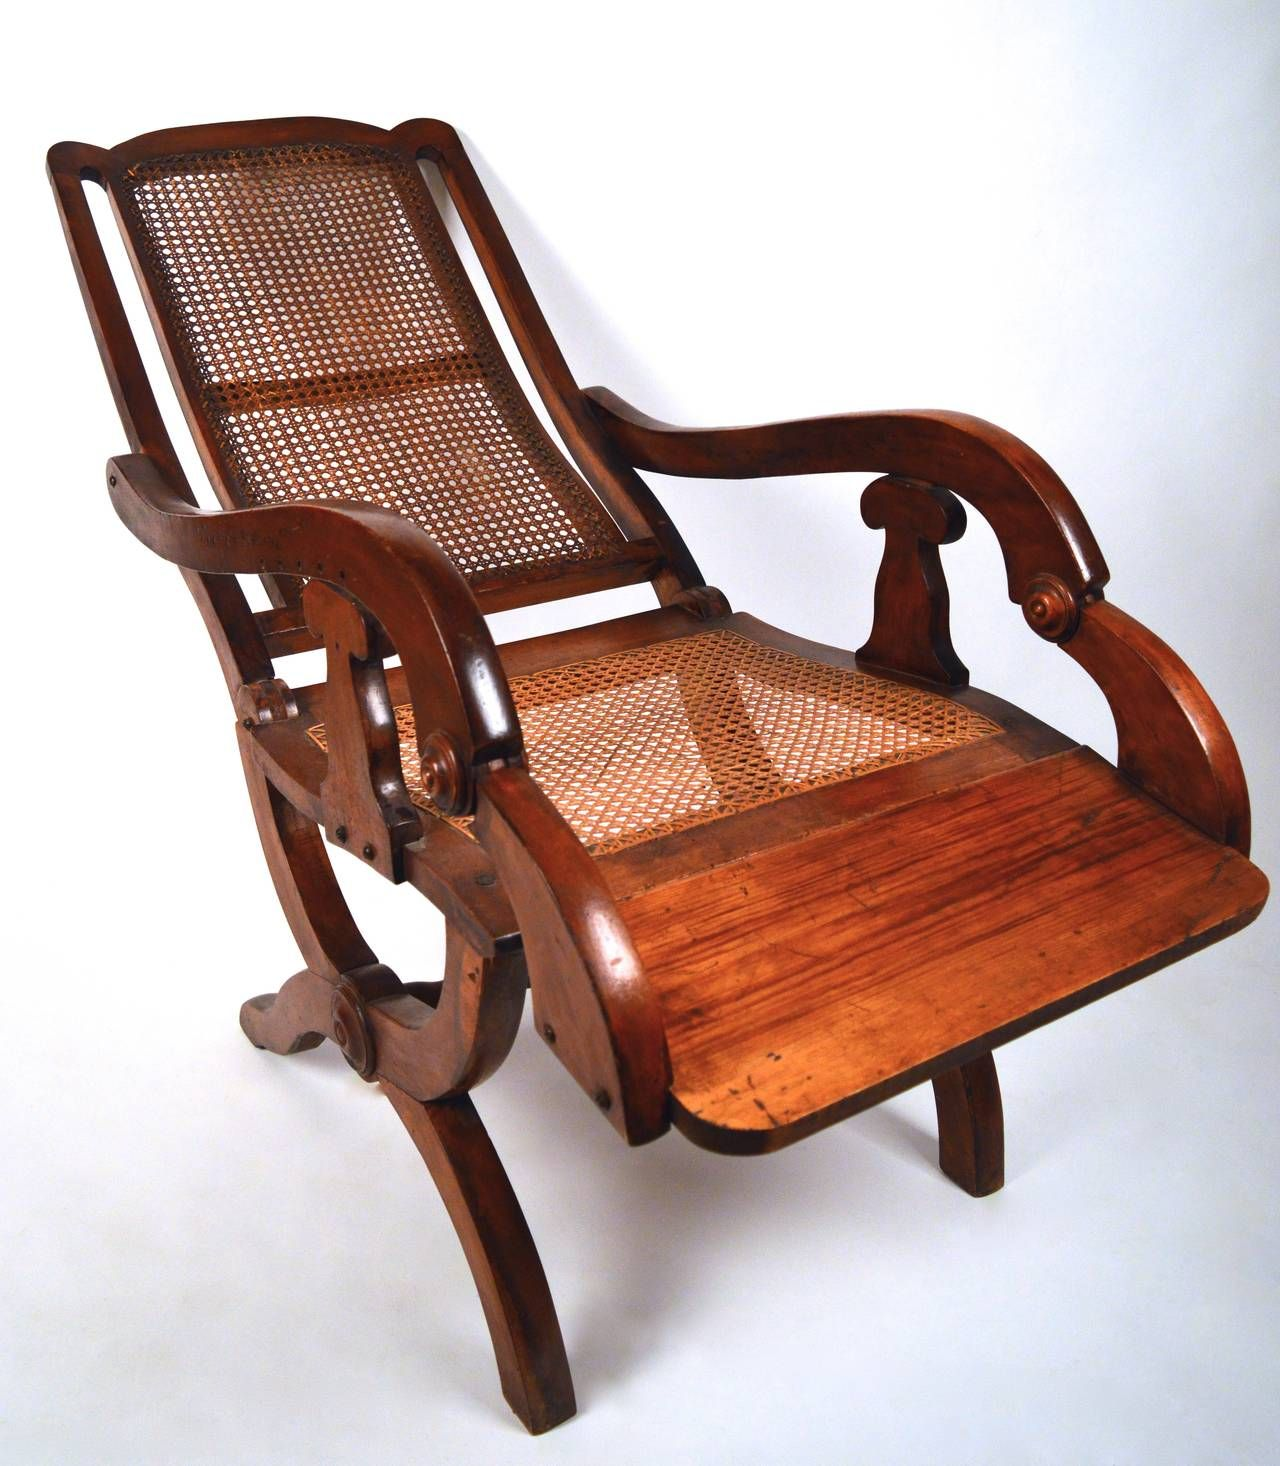 Unique Lounge Chairs 19th century british colonial reclining chair | from a unique